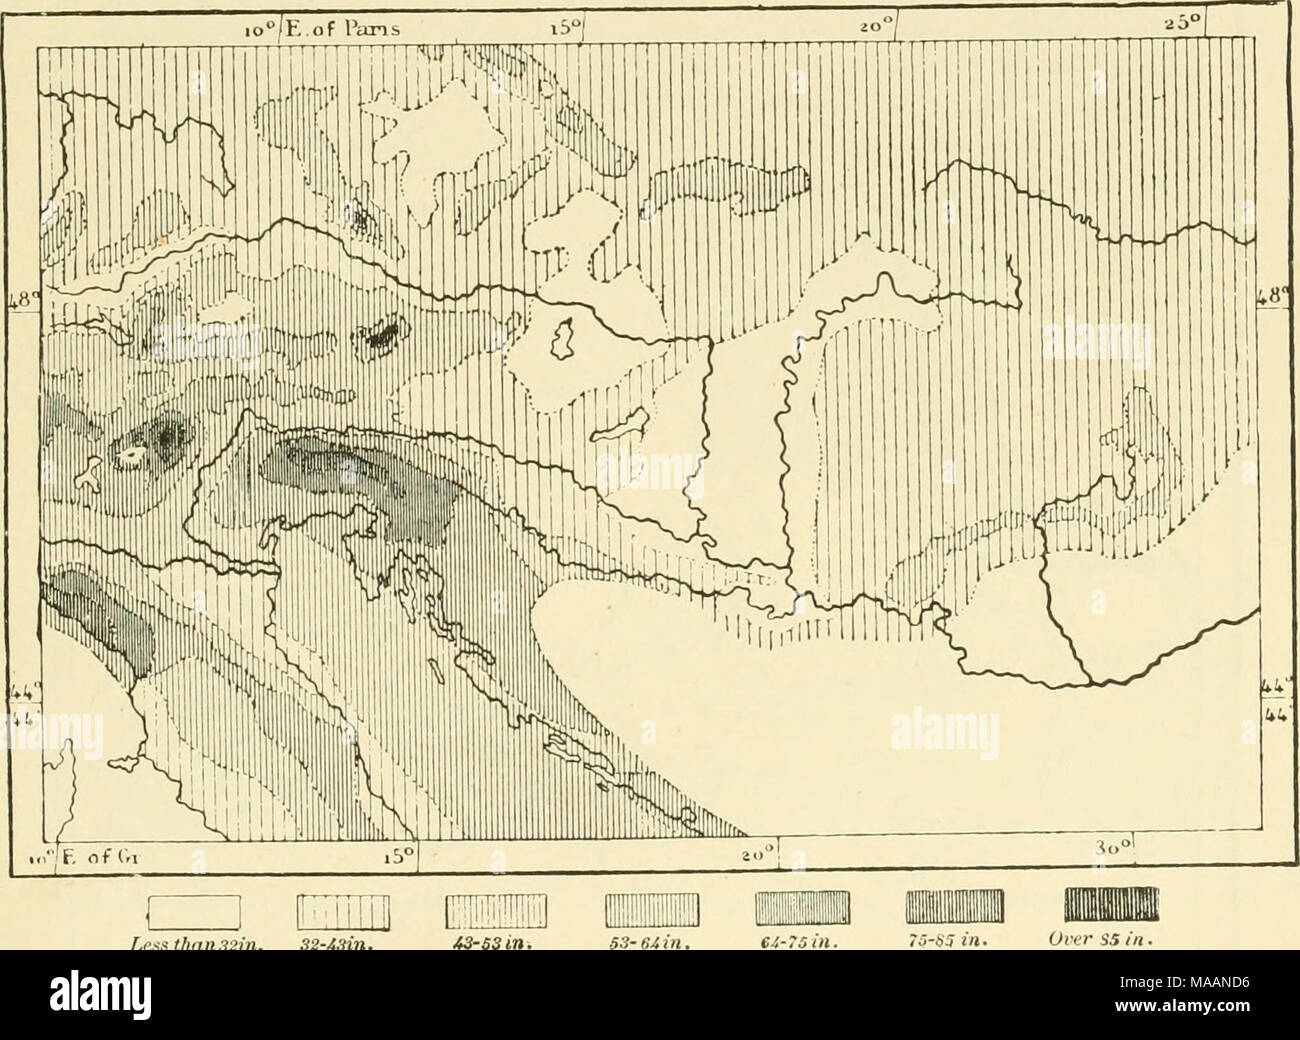 ". The earth and its inhabitants .. . Lexs than 32m. 32-43in. 43-S3in. thai. The names of several villages in the latter prove that the district was formerly inhabited, in part at least, by Slavs. Boioarians and Swabians from the north-west, Germanised Slavs advancing up the valley of the Drave, Goths and Longobards ousted from Italy, gradually reduced the domain of the Ladins, and they are confined now to the valleys of Gherdeina (Gardena, or Groden), Enneberg, and Badia, to the east of Brixen. The ""Welsh"" spoken there is mixed, however, with many words of German origin, whilst the G - Stock Image"